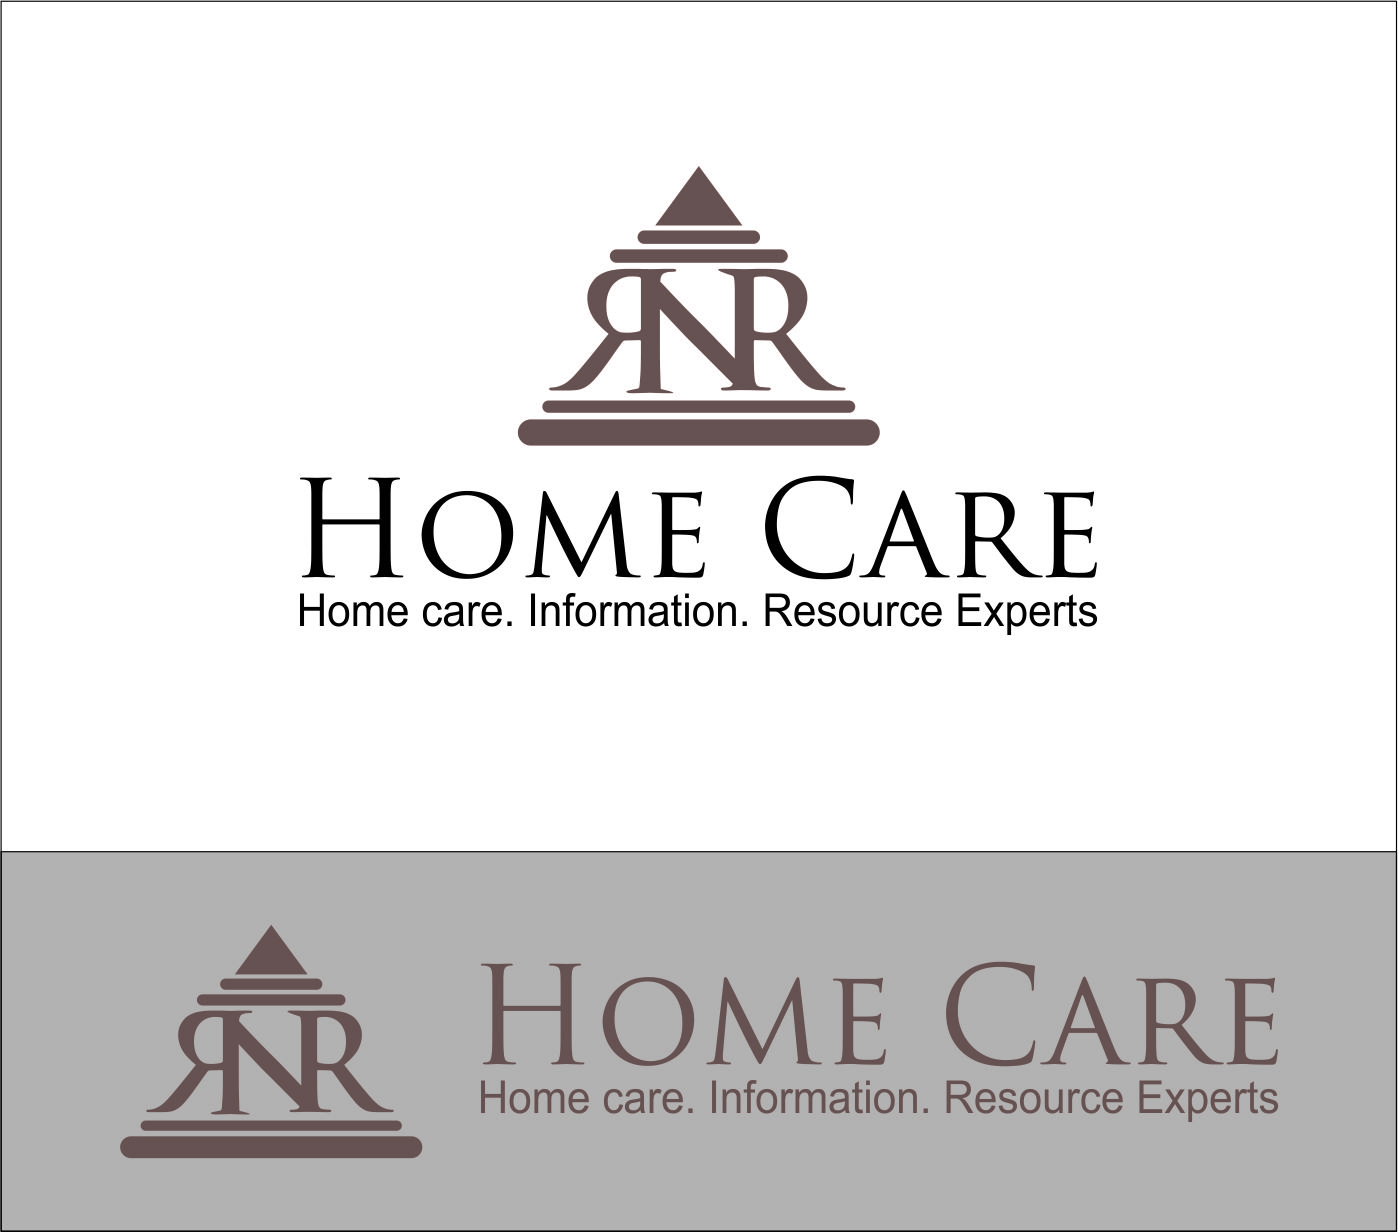 Logo Design by Agus Martoyo - Entry No. 170 in the Logo Design Contest Imaginative Logo Design for RNR HomeCare.